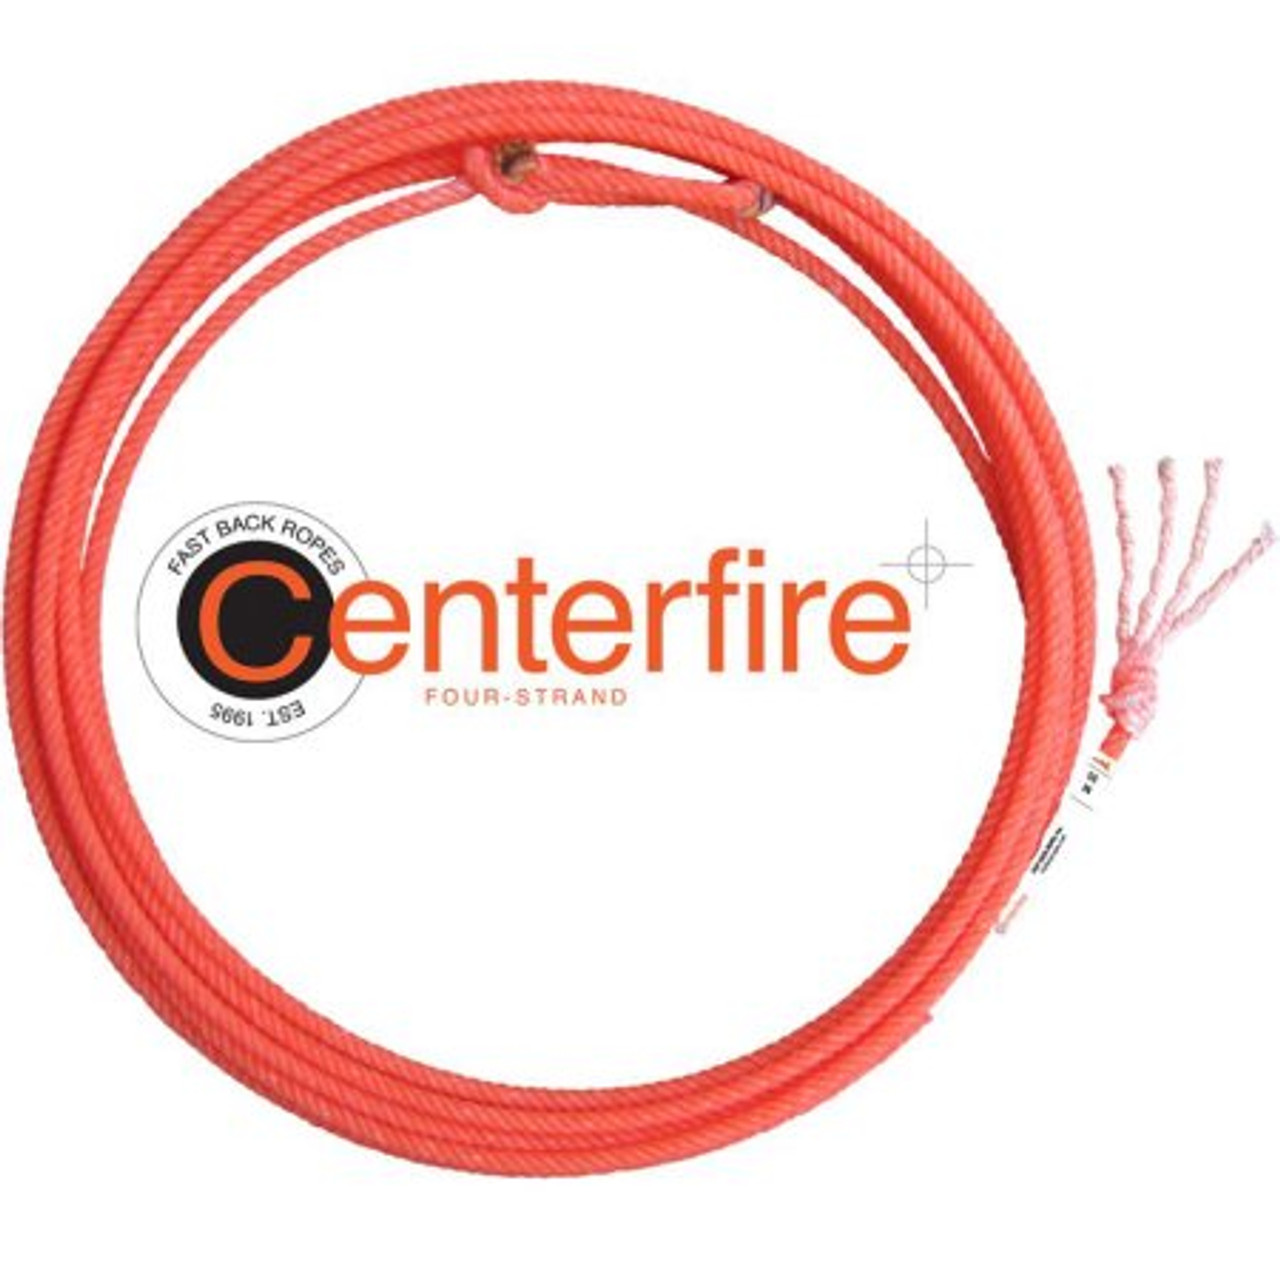 Fast Back Centerfire - Hd Rope 31 (4034)